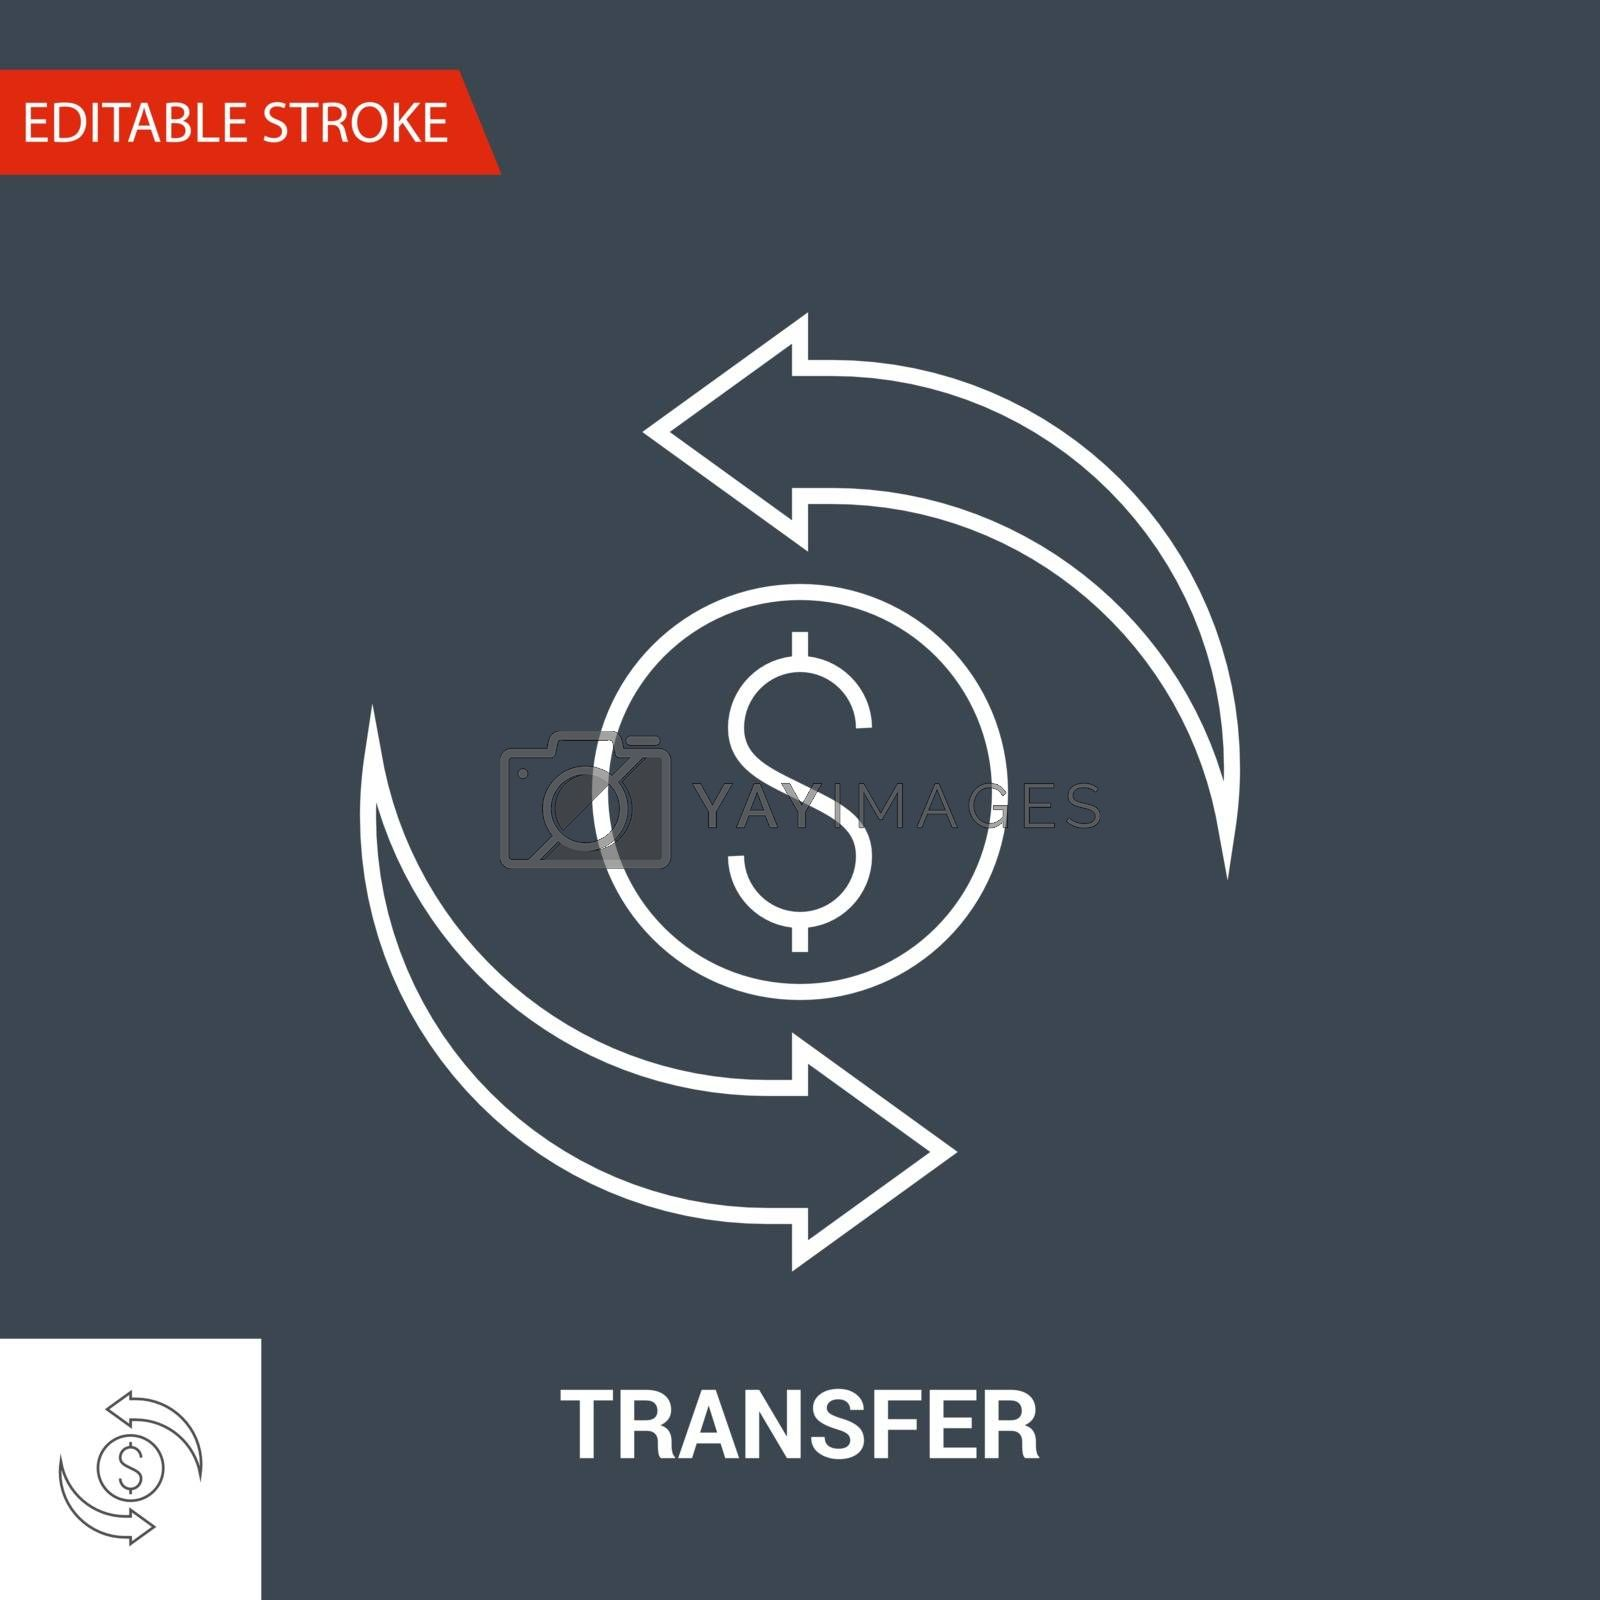 Transfer Icon. Thin Line Vector Illustration - Adjust stroke weight - Expand to any Size - Easy Change Colour - Editable Stroke